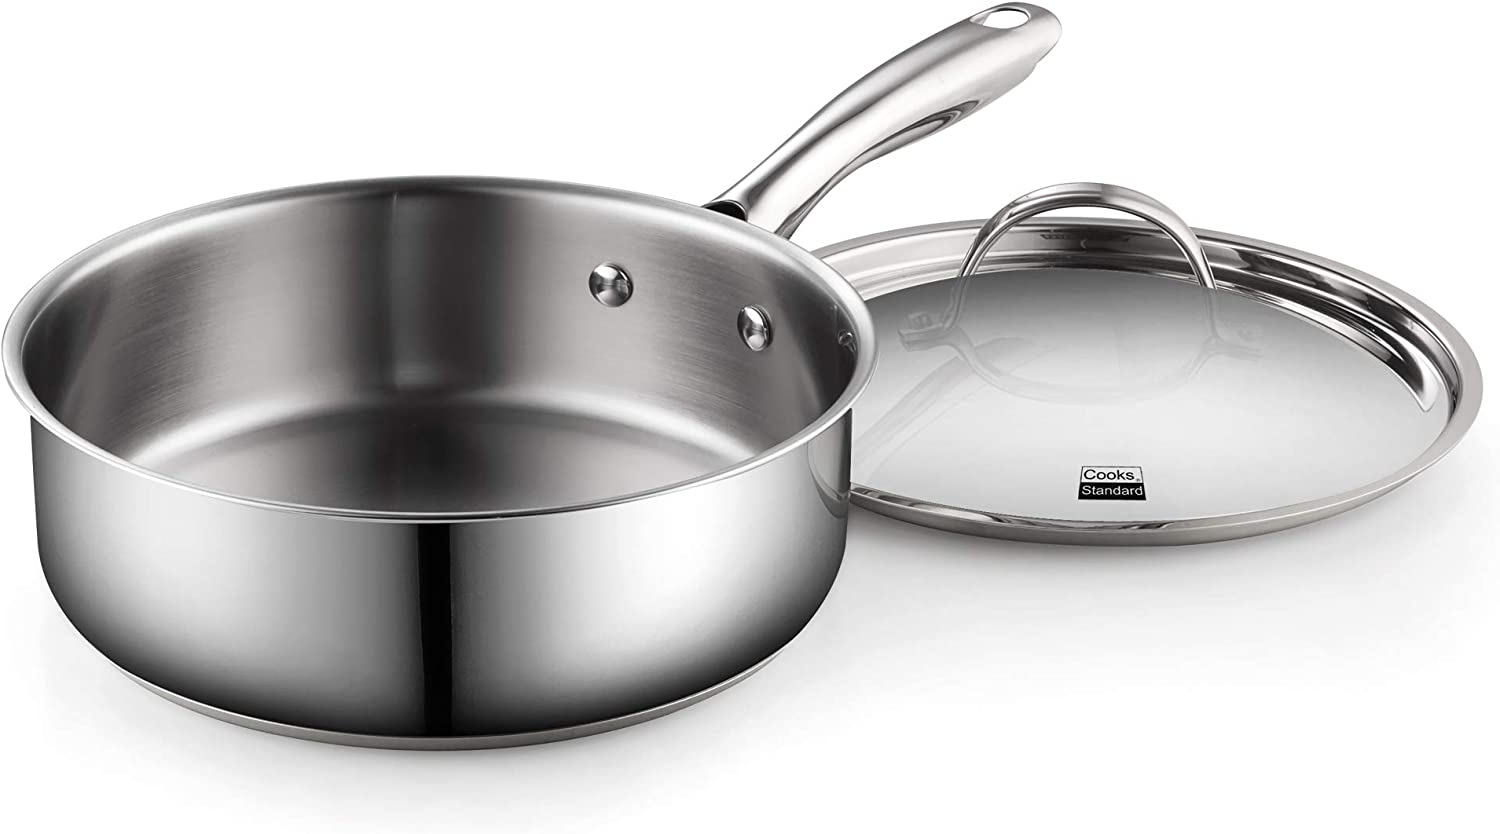 Cooks Standard Classic Stainless Steel Deep Lid 5 Quart/11-Inch Saute Pan, 5 Quart, Silver: Kitchen & Dining